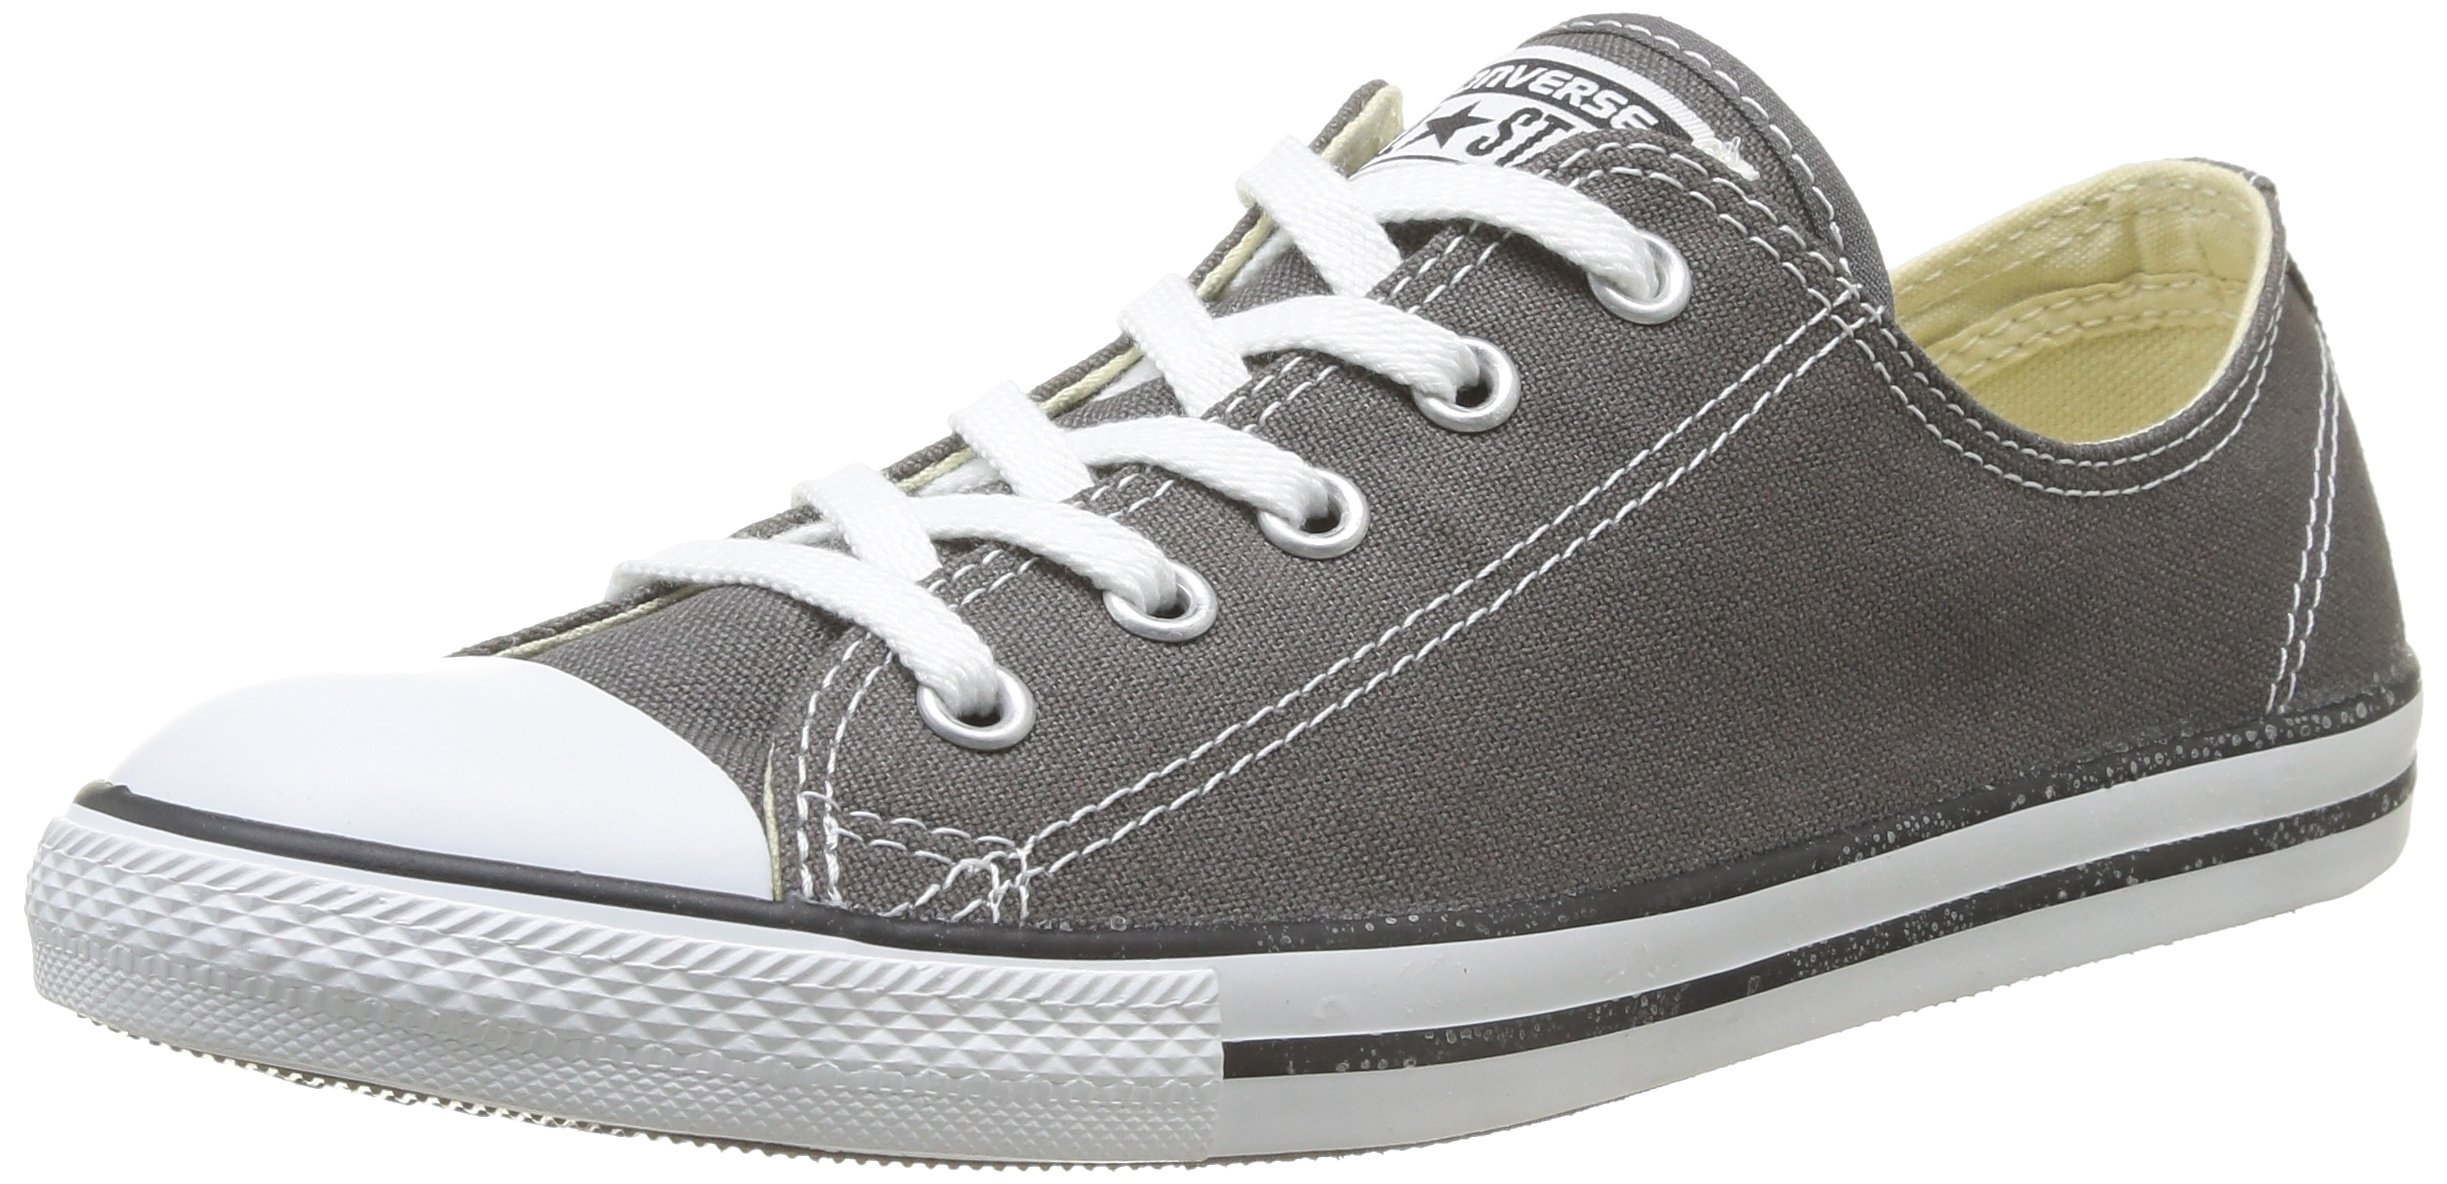 5824a95bd4692e Galleon - Converse Women s Dainty Canvas Low Top Sneaker Charcoal 8 M US